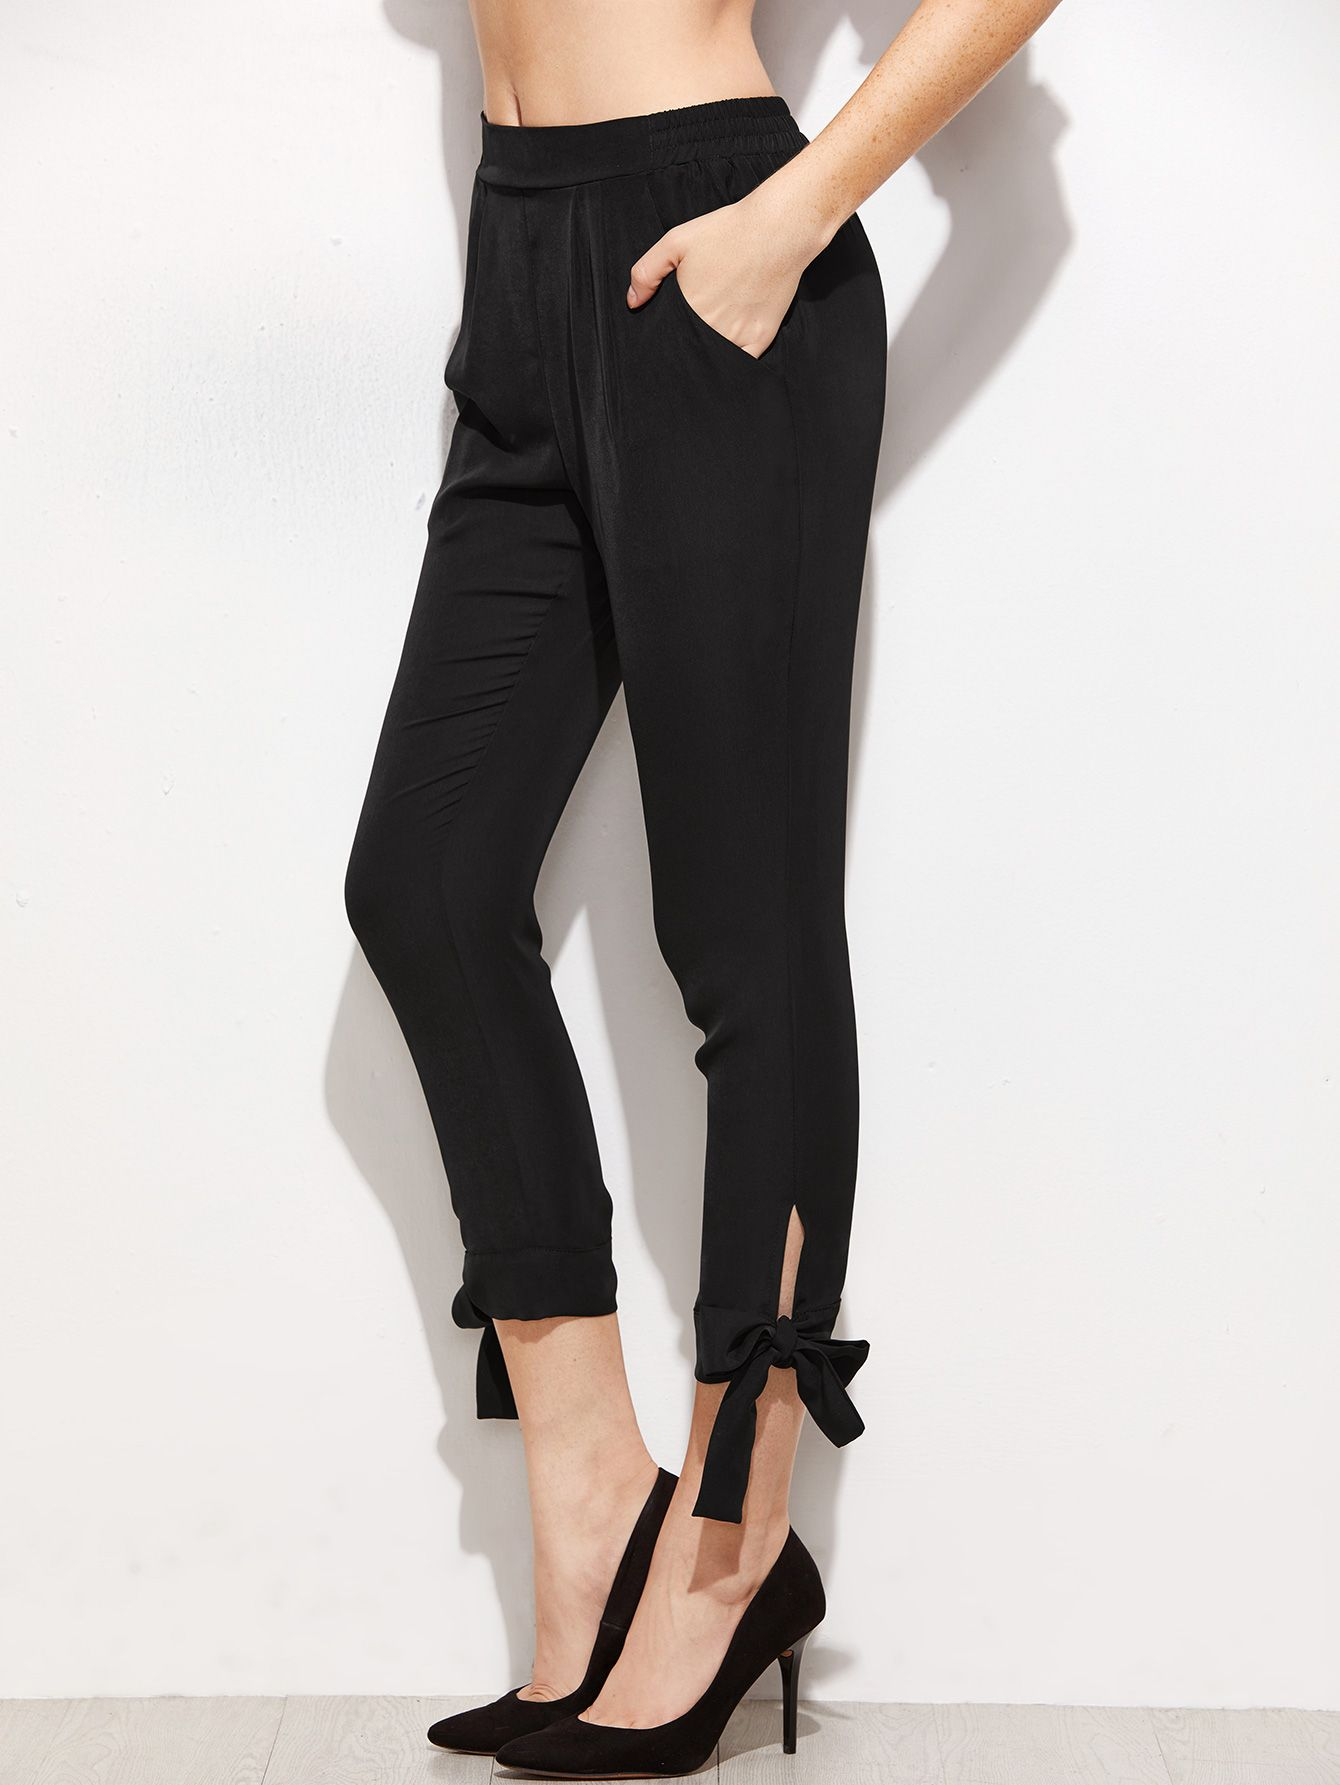 f8c5f9562aba6d Shop Black Bow Tie Hem Crop Skinny Pants online. SheIn offers Black Bow Tie  Hem Crop Skinny Pants & more to fit your fashionable needs.